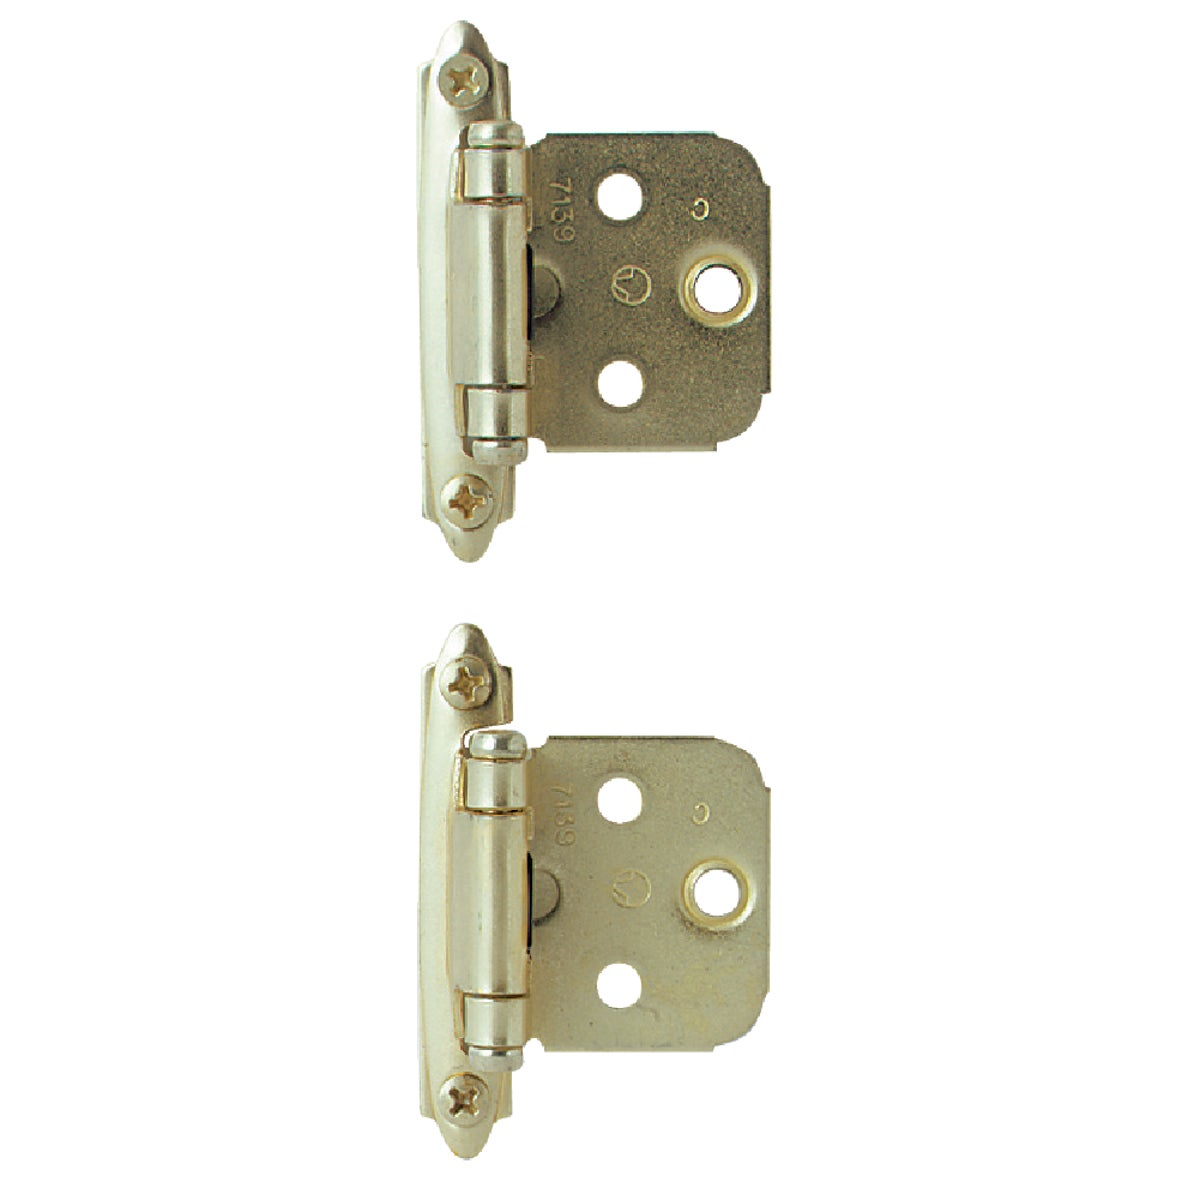 "2-3/4"" PB OVERLAY HINGE - BP3429-3 by Amerock Corporation"